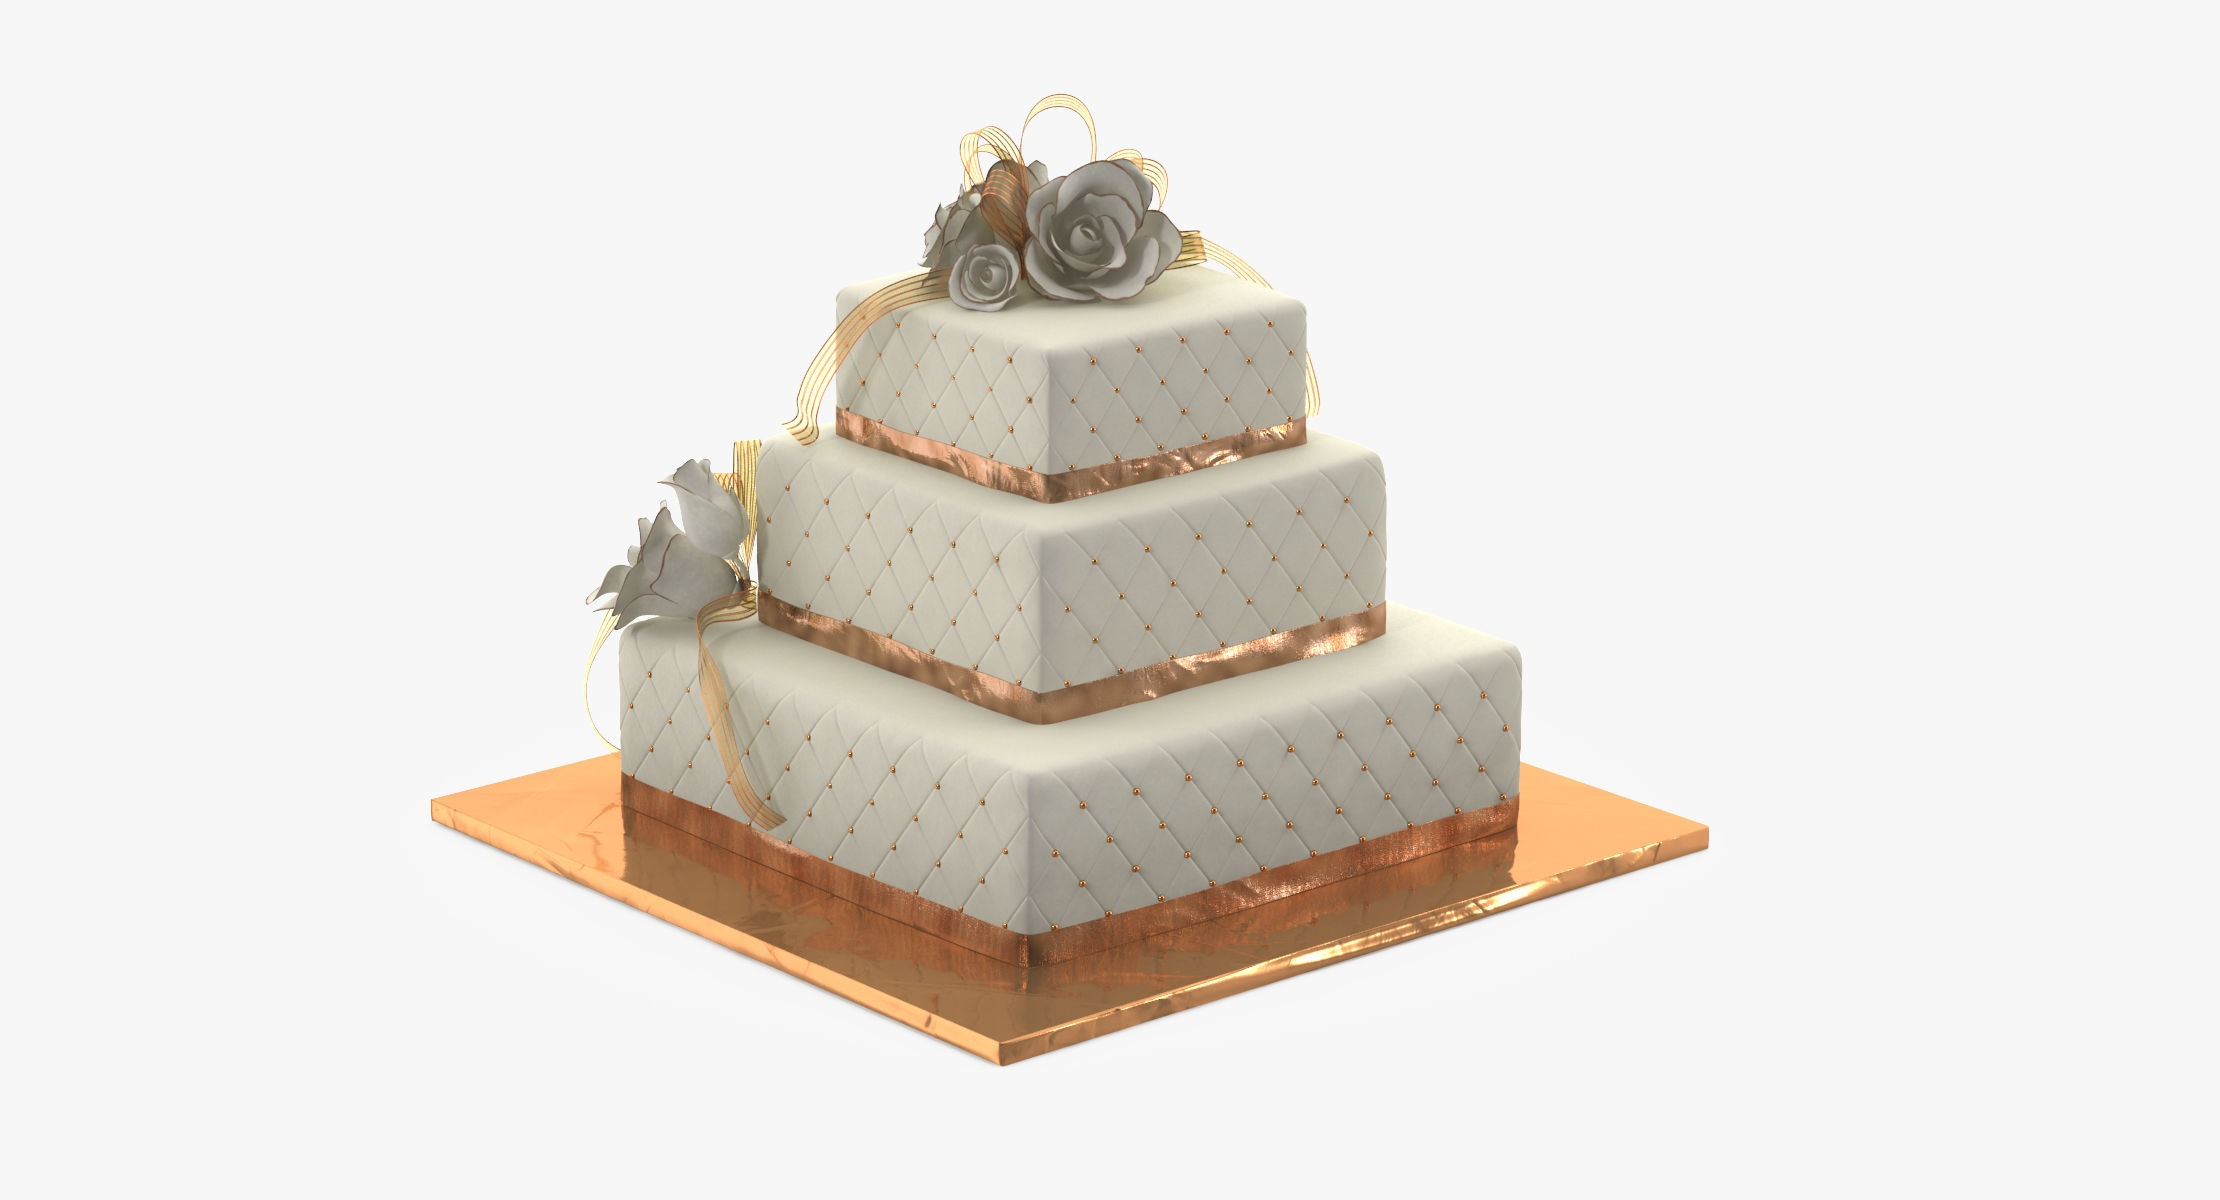 Square Wedding Cake - reel 1